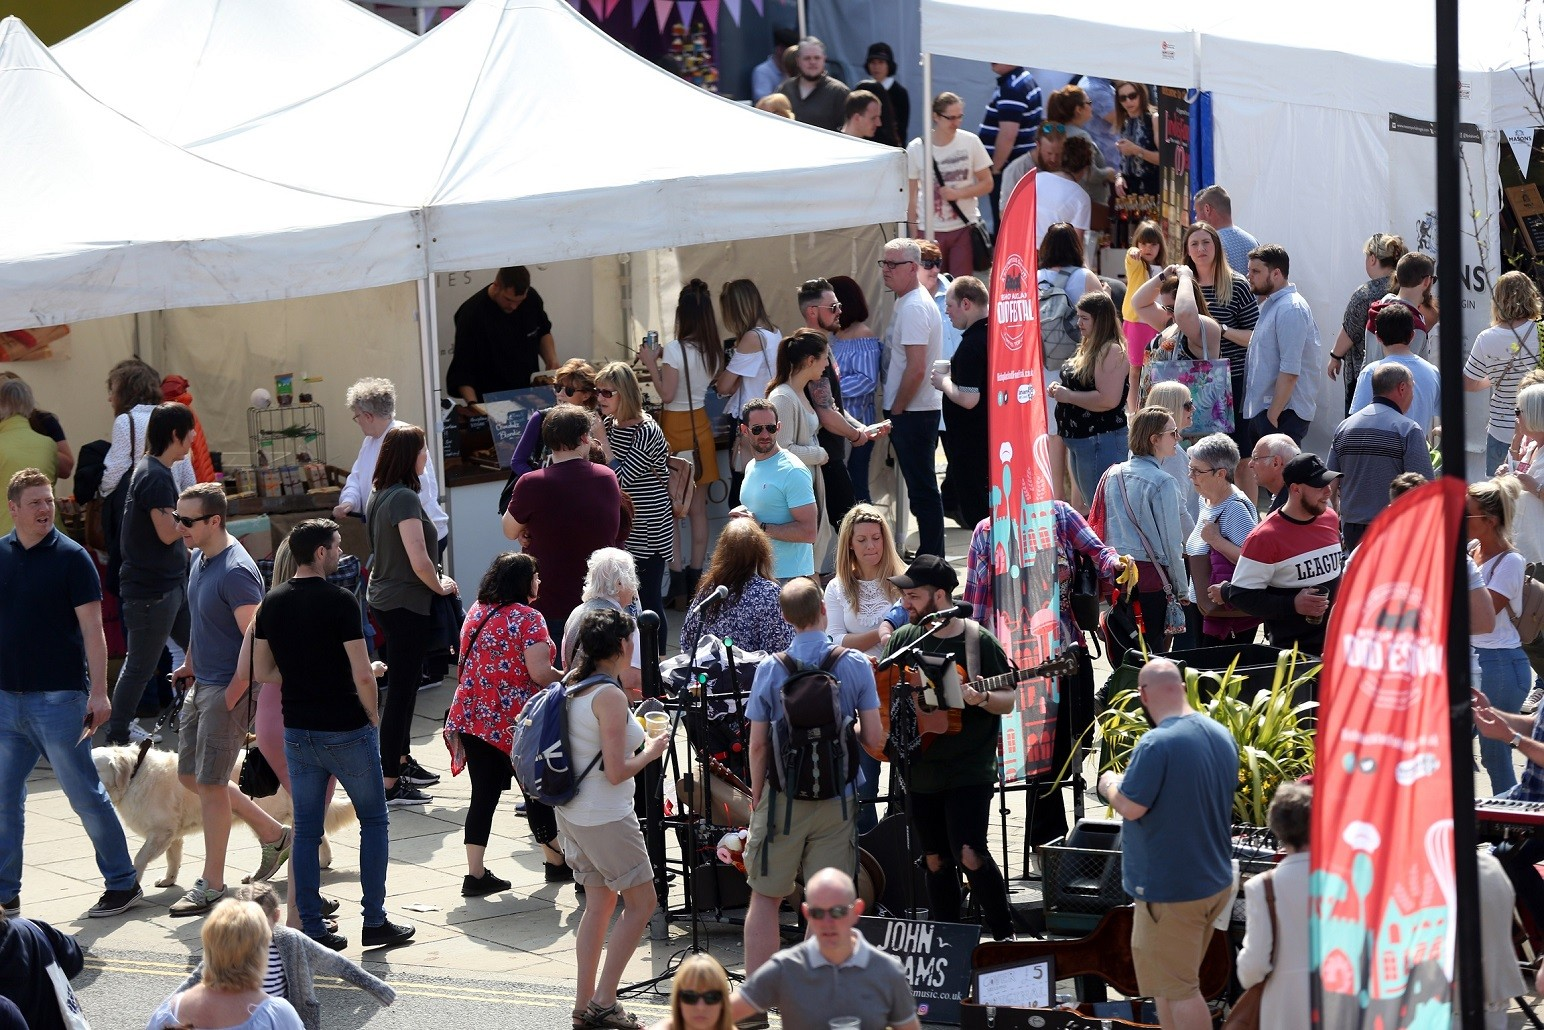 Gregg Wallace Heads to North East Food Festival